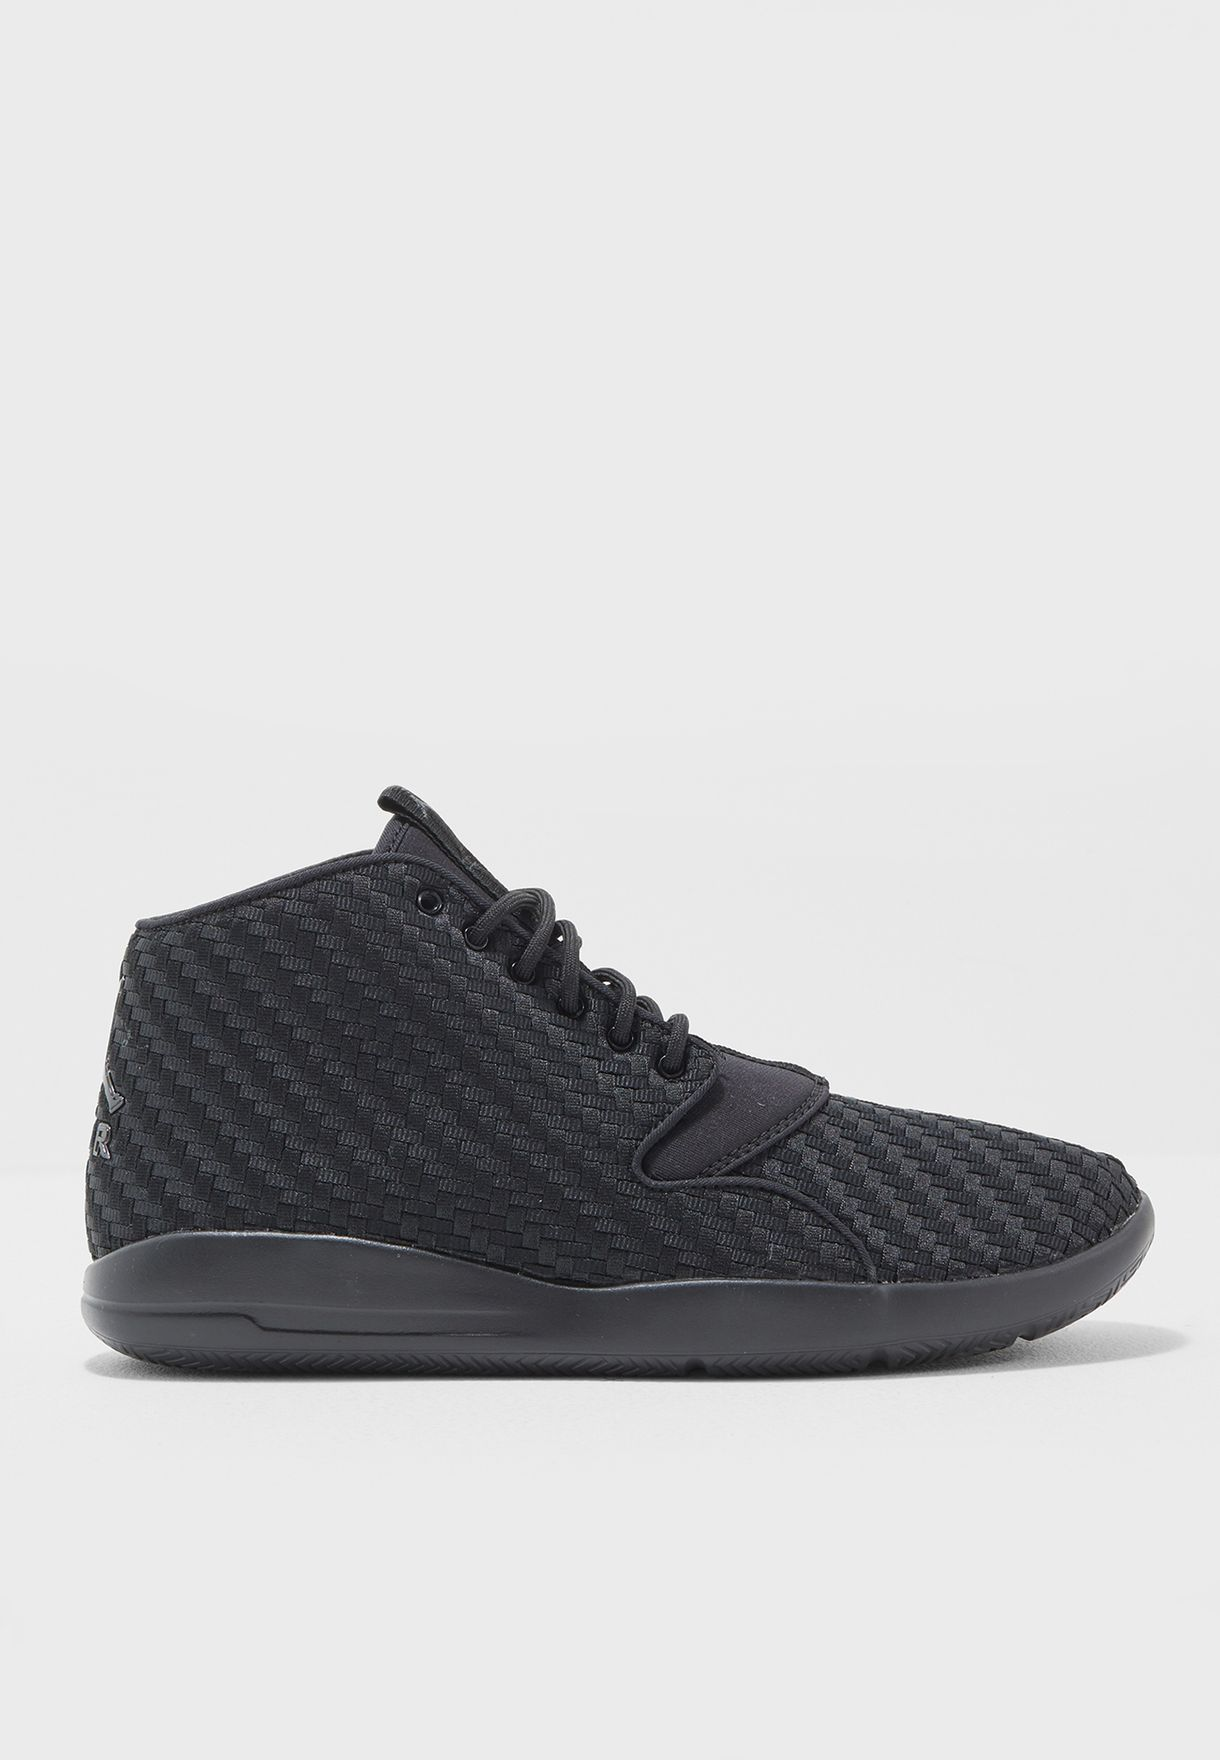 dcd91d6b3f9ea9 Shop Nike black Jordan Eclipse Chukka Woven AA3996-010 for Men in ...